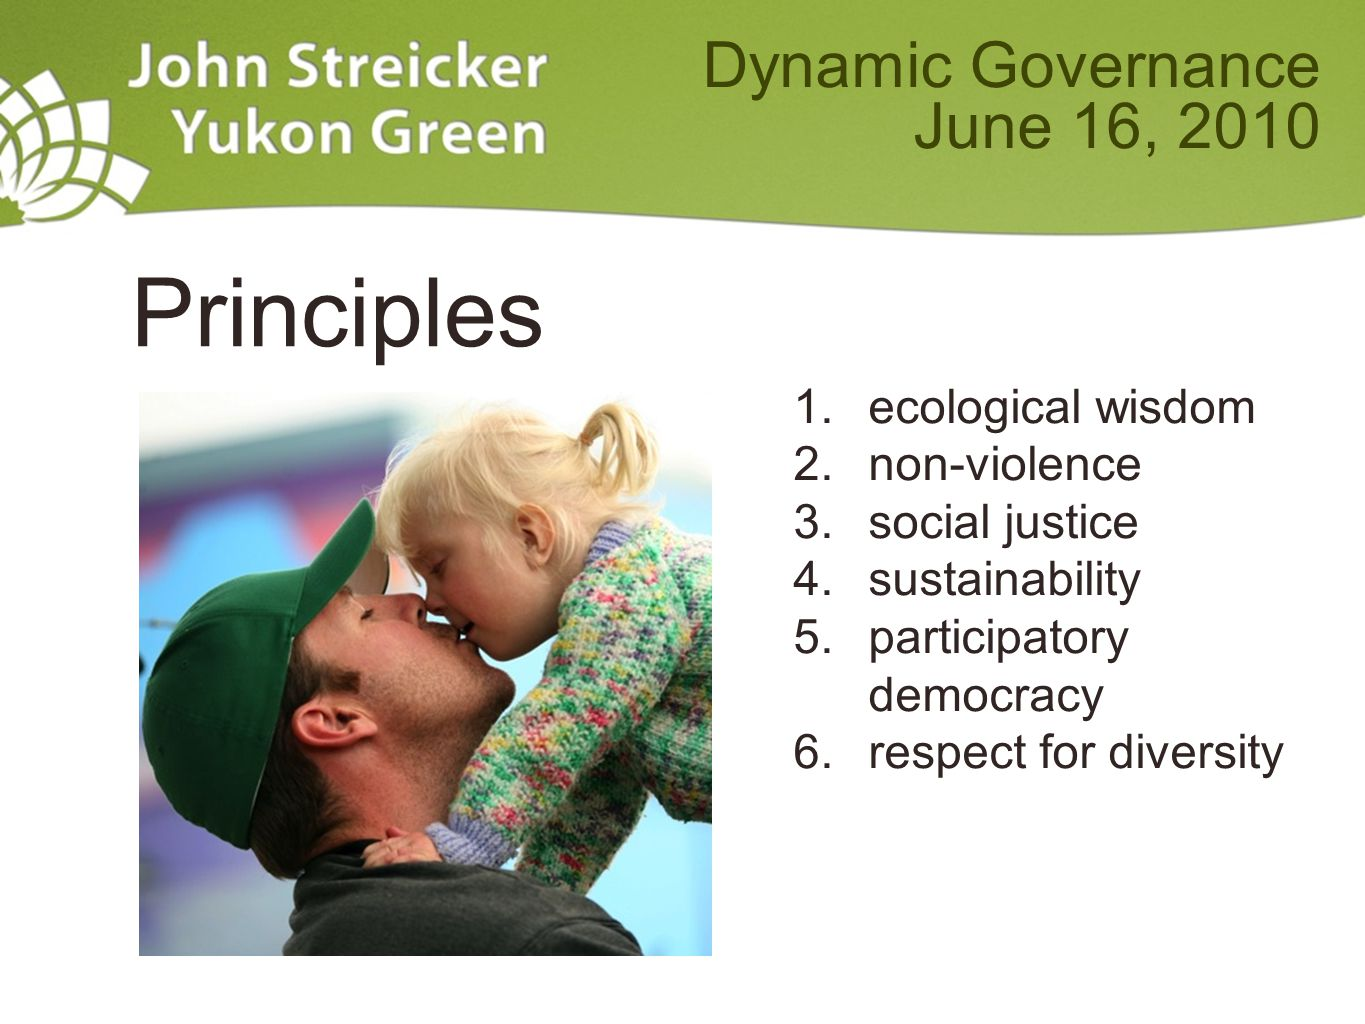 Principles 1.ecological wisdom 2.non-violence 3.social justice 4.sustainability 5.participatory democracy 6.respect for diversity Dynamic Governance June 16, 2010